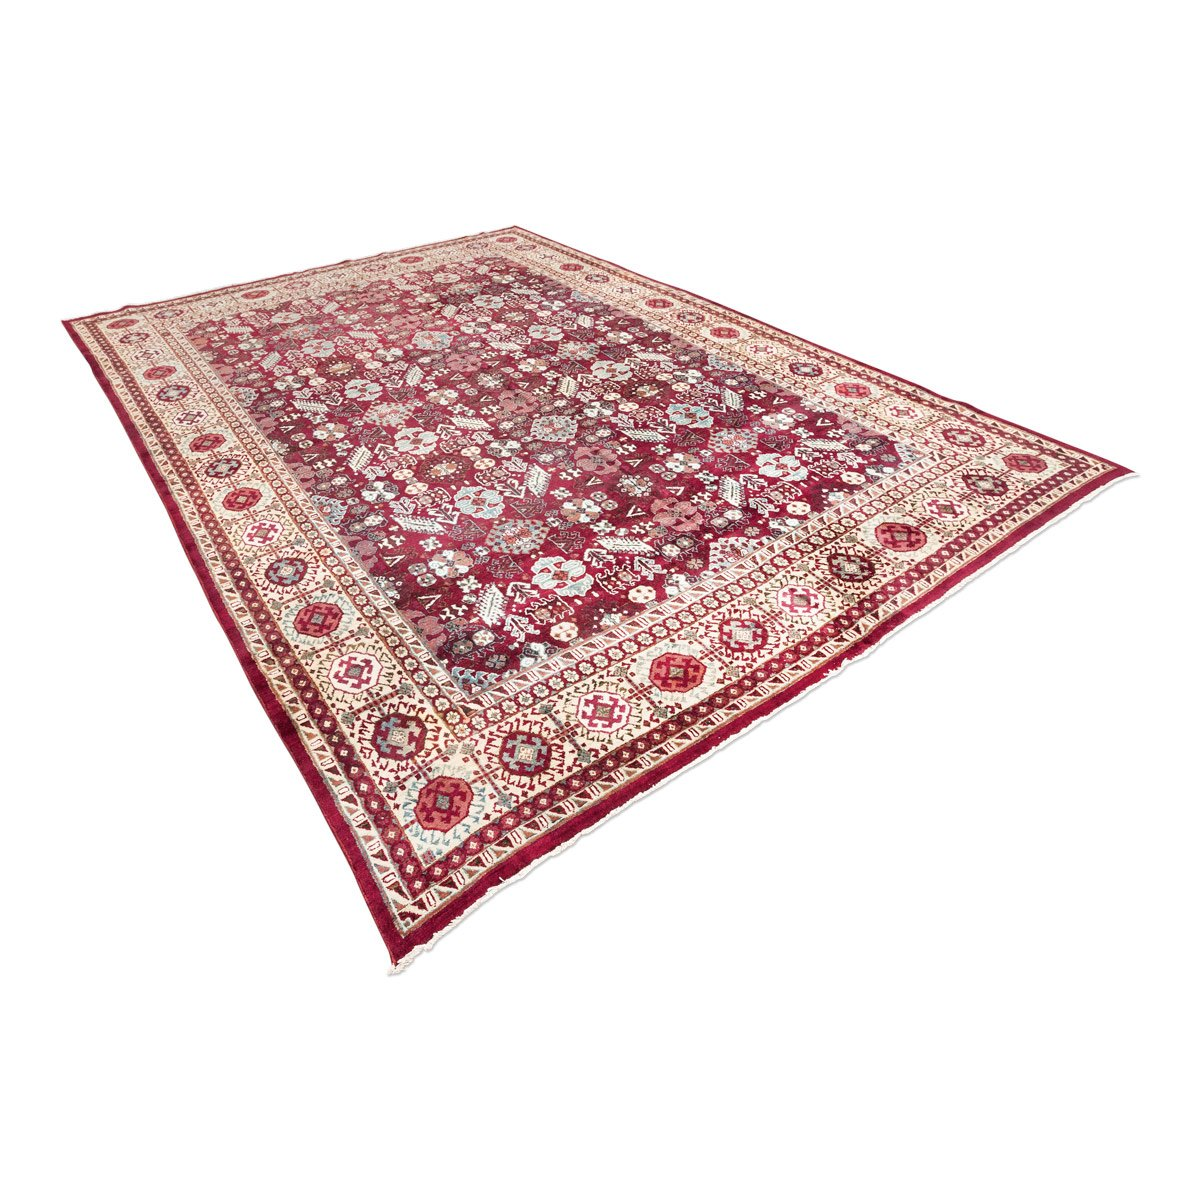 Antique Indian Agra Rug With Palmettes For Sale At Pamono